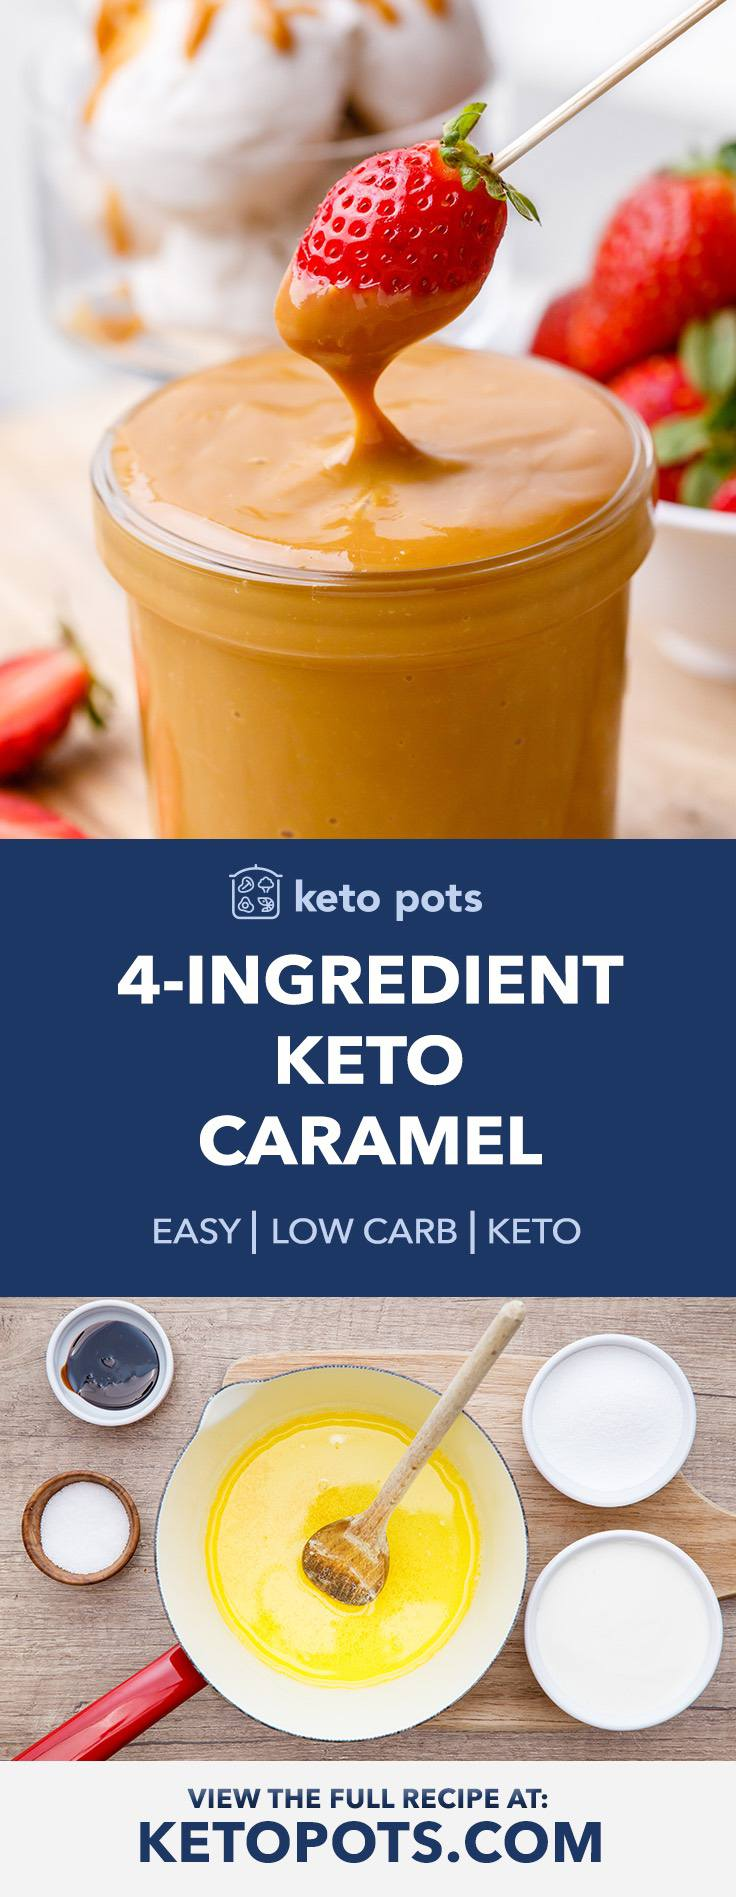 How to Make The Best 4-Ingredient Keto Caramel